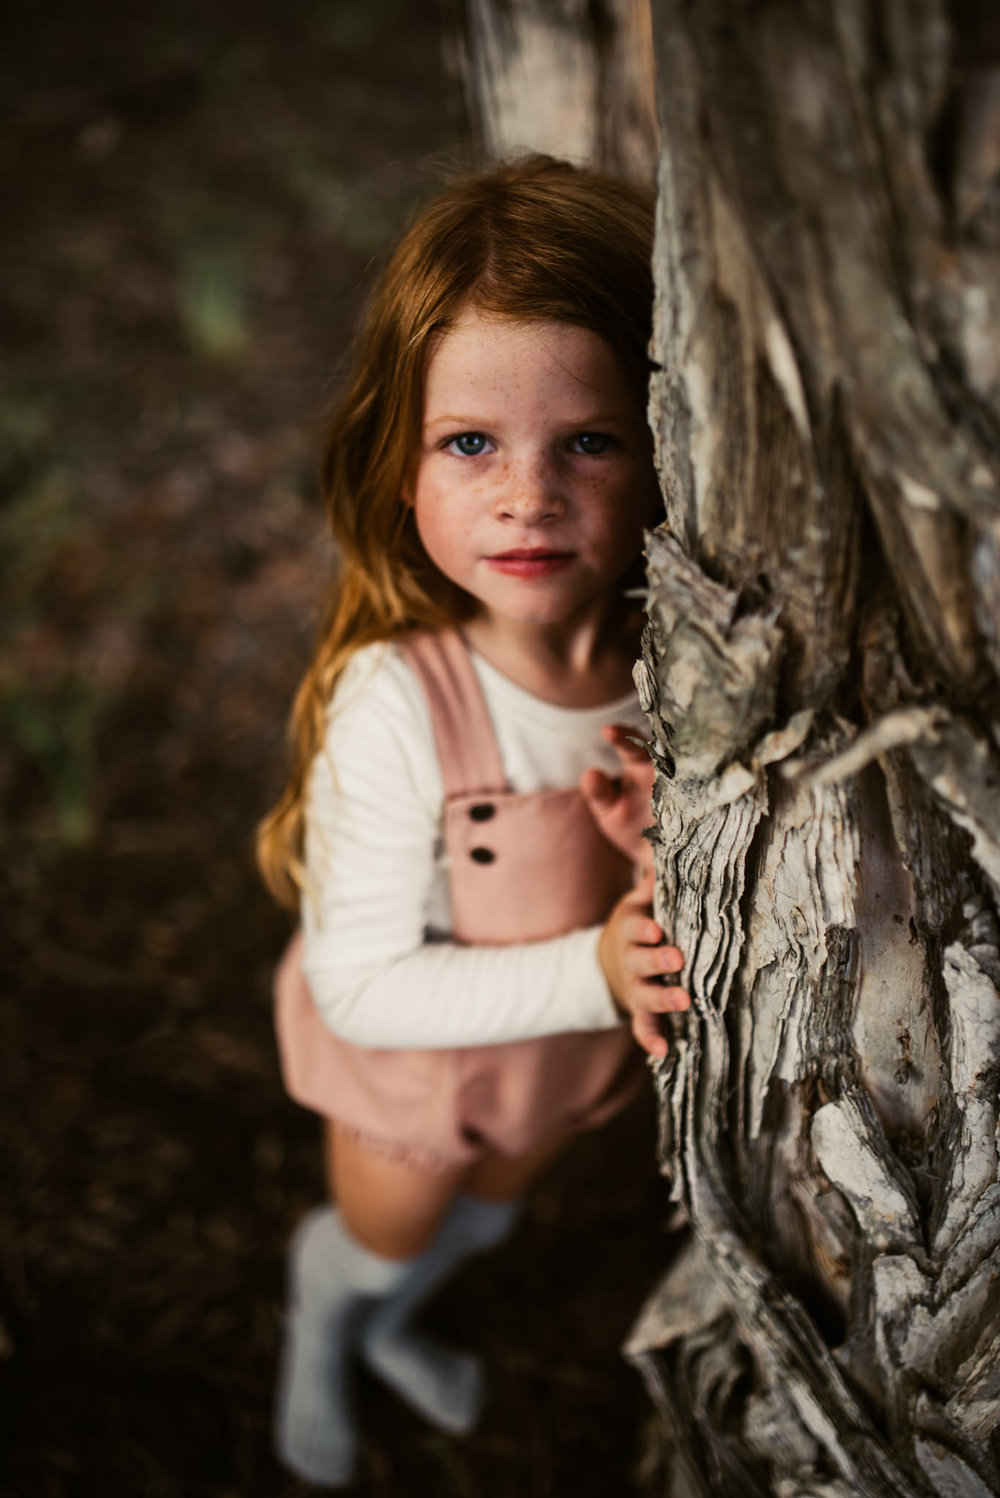 twyla jones photography - treasure coast florida - childrens adventure clothing commercial shoot--31.jpg